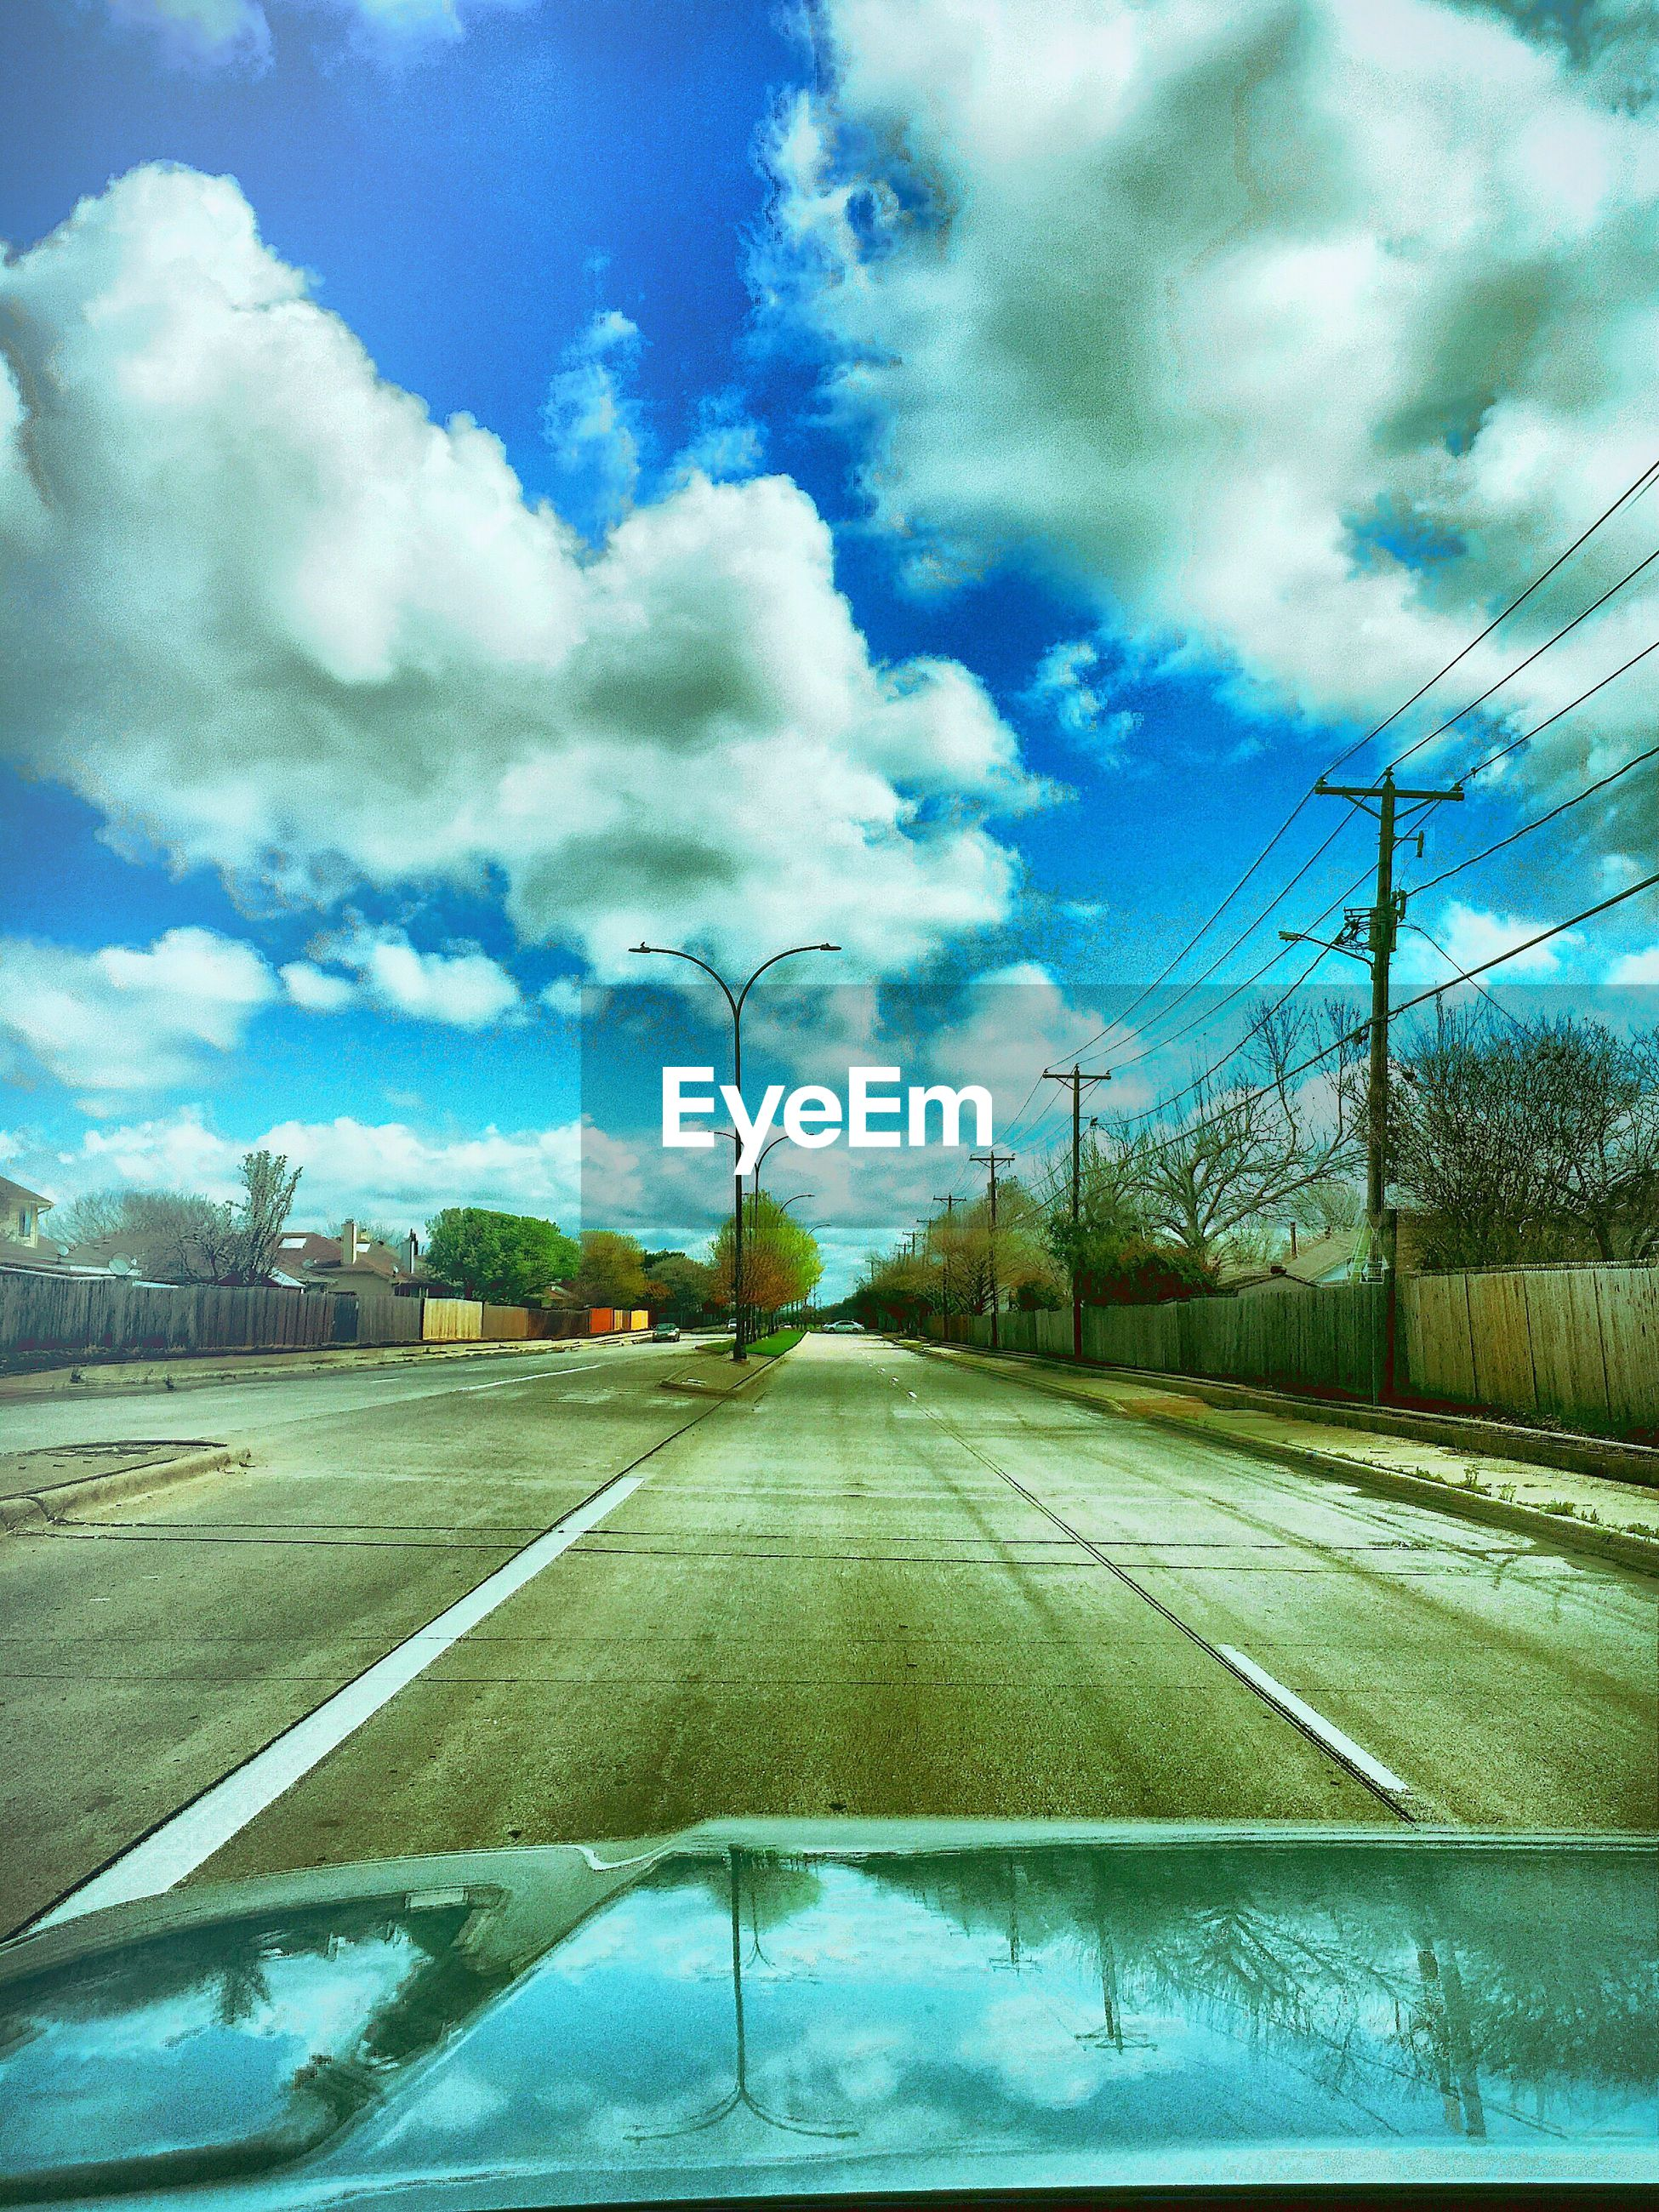 sky, transportation, the way forward, road, cloud - sky, diminishing perspective, vanishing point, cloudy, street, cloud, road marking, car, electricity pylon, empty road, weather, street light, day, blue, country road, land vehicle